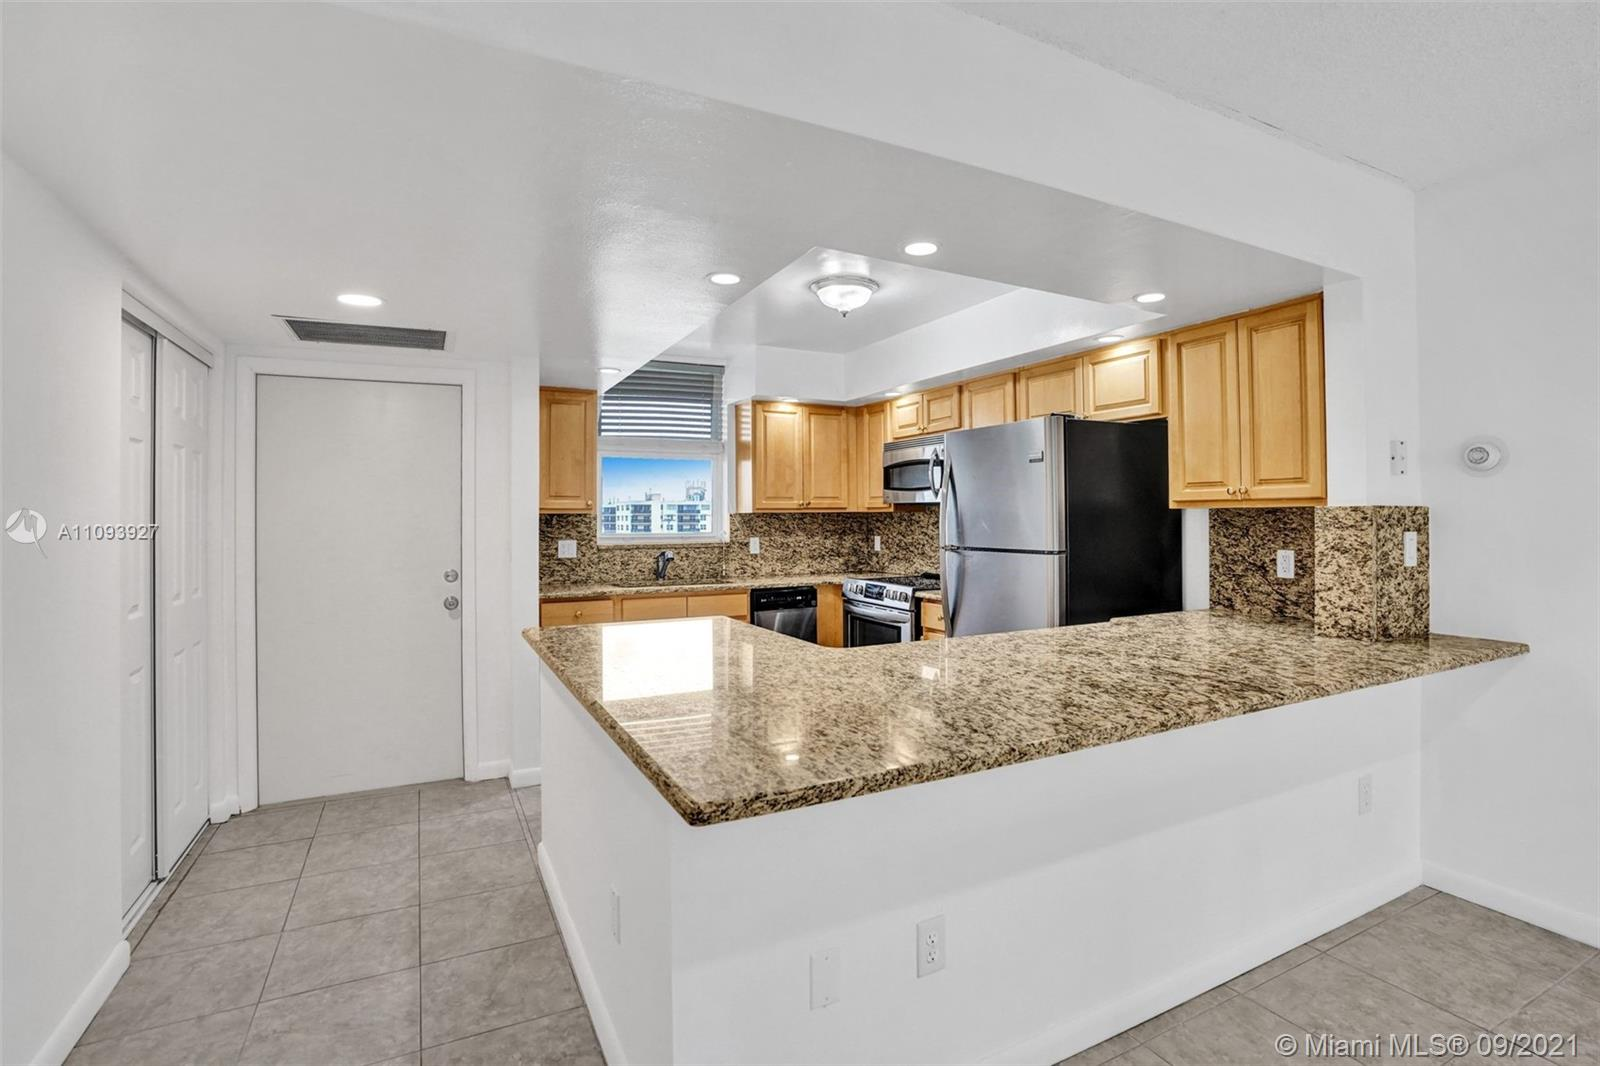 """Enjoy Wonderful, Ocean, Intercostal, & Ft. Lauderdale City Views, from this 2/2 Renovated Sub Penthouse Condo at """"The Royal Mariner"""". Walk to Lauderdale By The Sea Beach w/ Great restaurants & Shops! Renovated kitchen w/ Granite, Maple cabinets & S/S appliances, including Frigidaire Gallery refrigerator, w/ ice maker, GE Profile Convection Microwave Oven, Frigidaire slide in range, & dishwasher, Tiled throughout, & Walk in closets in both bedrooms, New Granite bathrooms, Pool, Club room & Garage parking for 1 car. This unit will sell FAST!"""